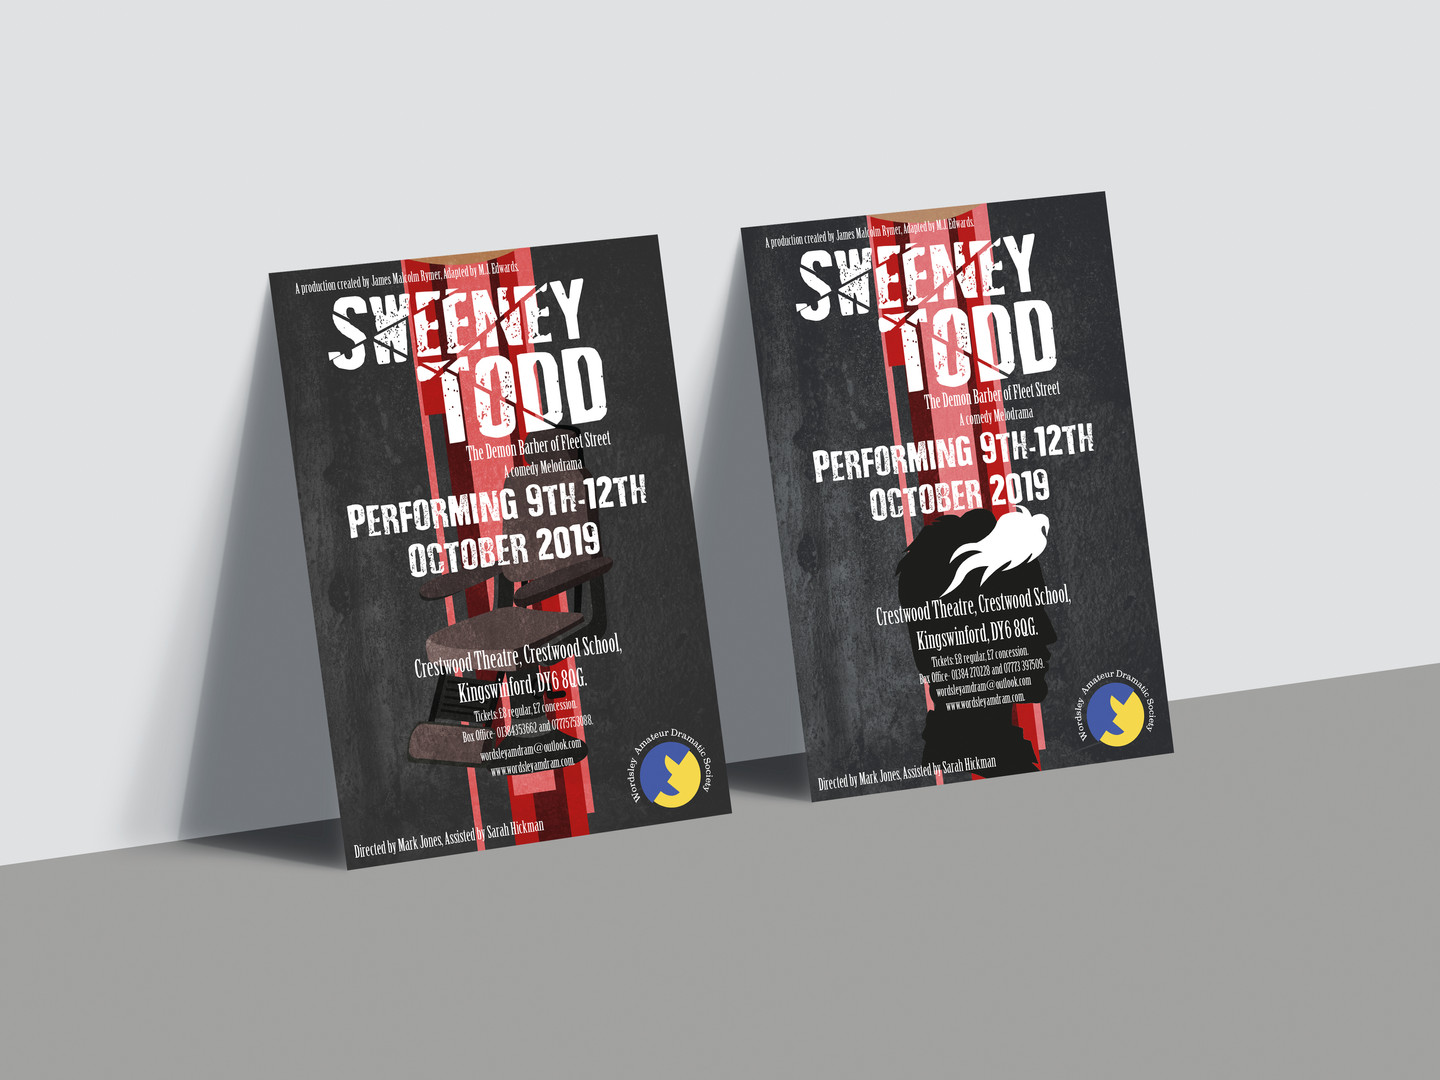 Sweeney Todd Posters 3 & 4